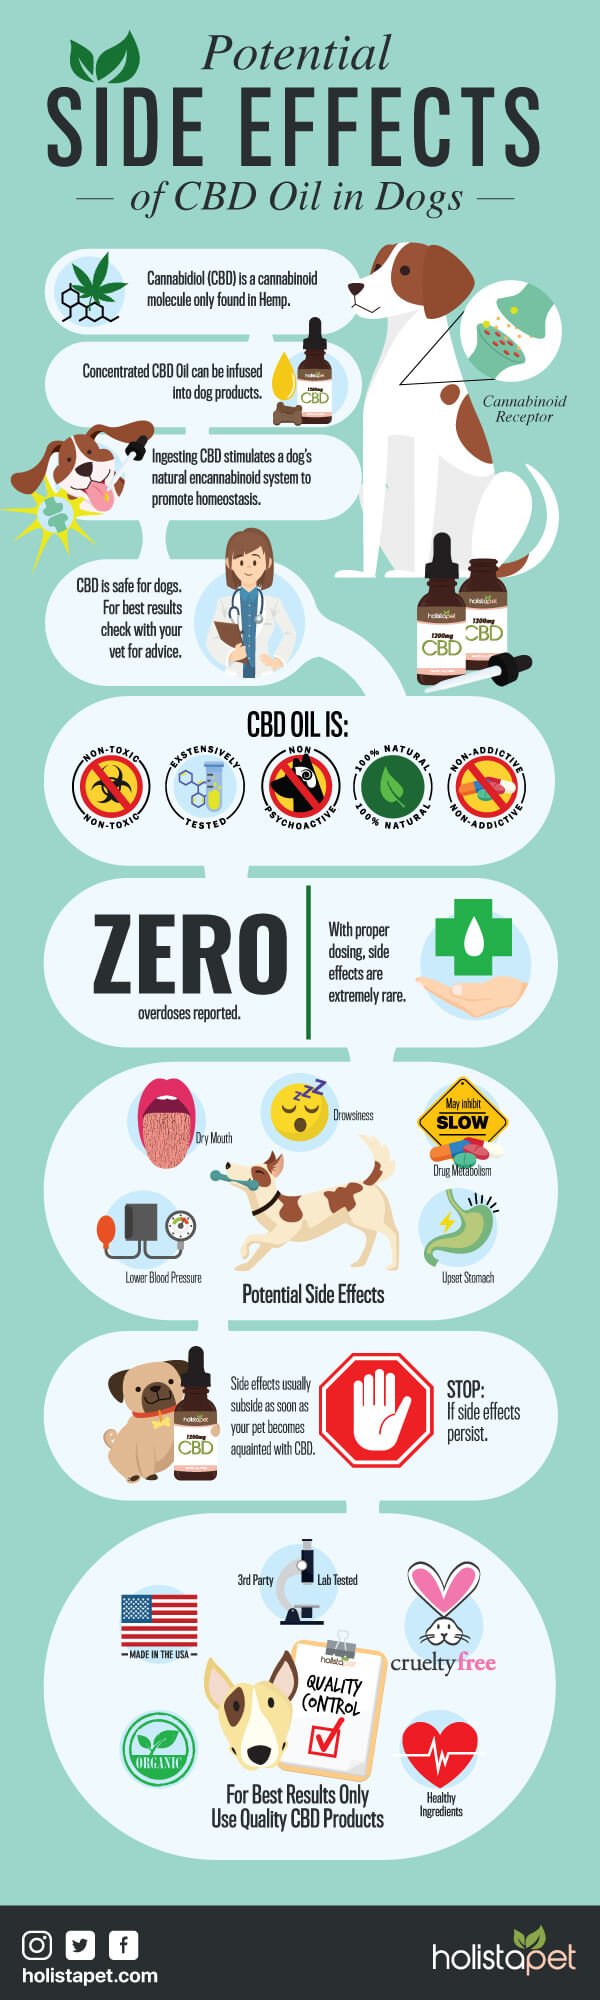 Potential-side-effects-of-CBD-oil-in-dogs-and-cats-infographic-plaza